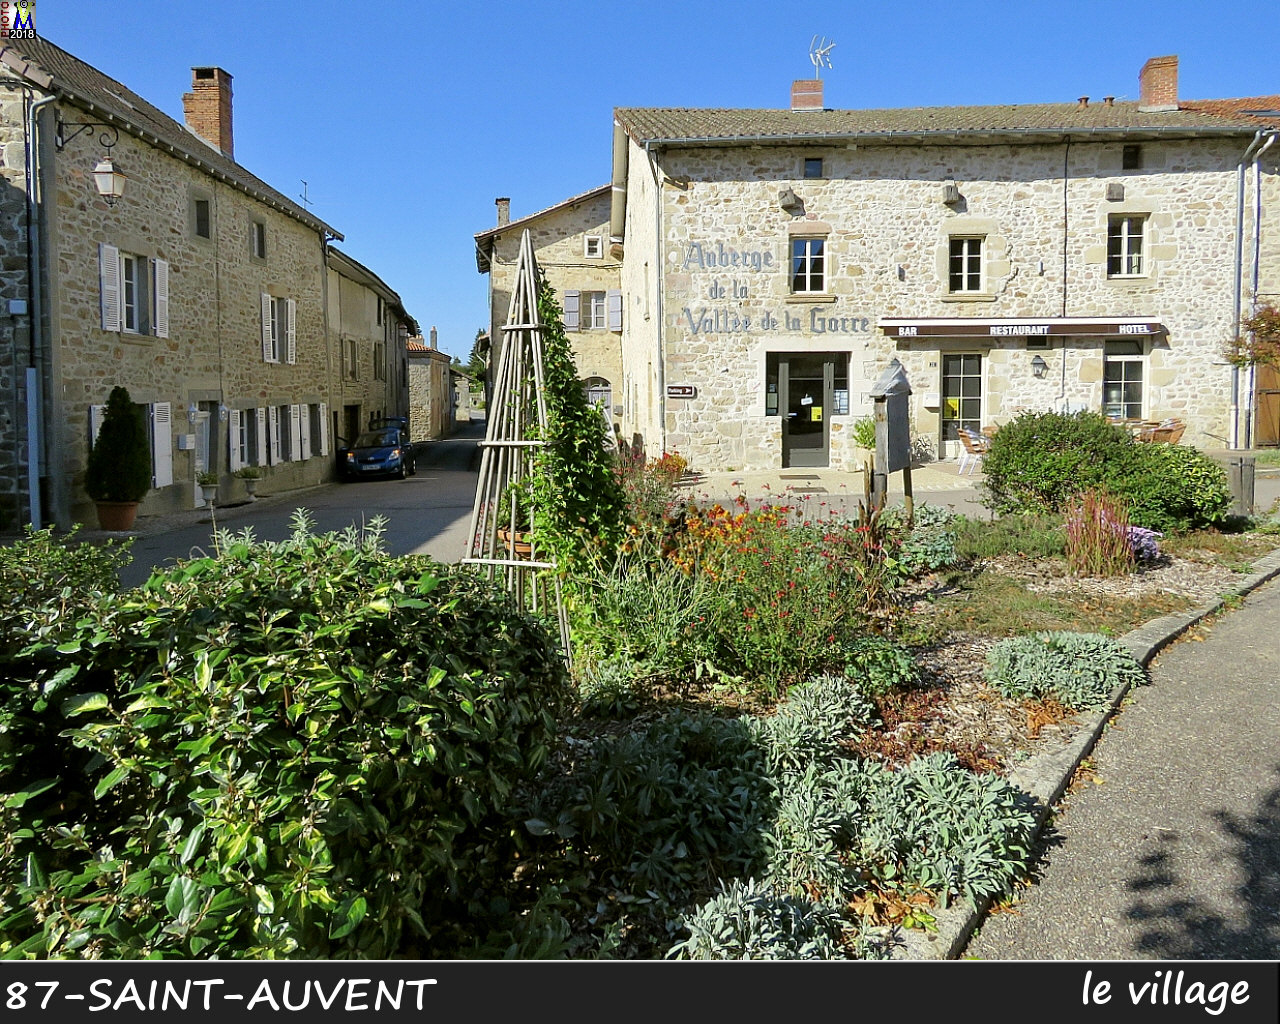 87St-AUVENT_village_1000.jpg